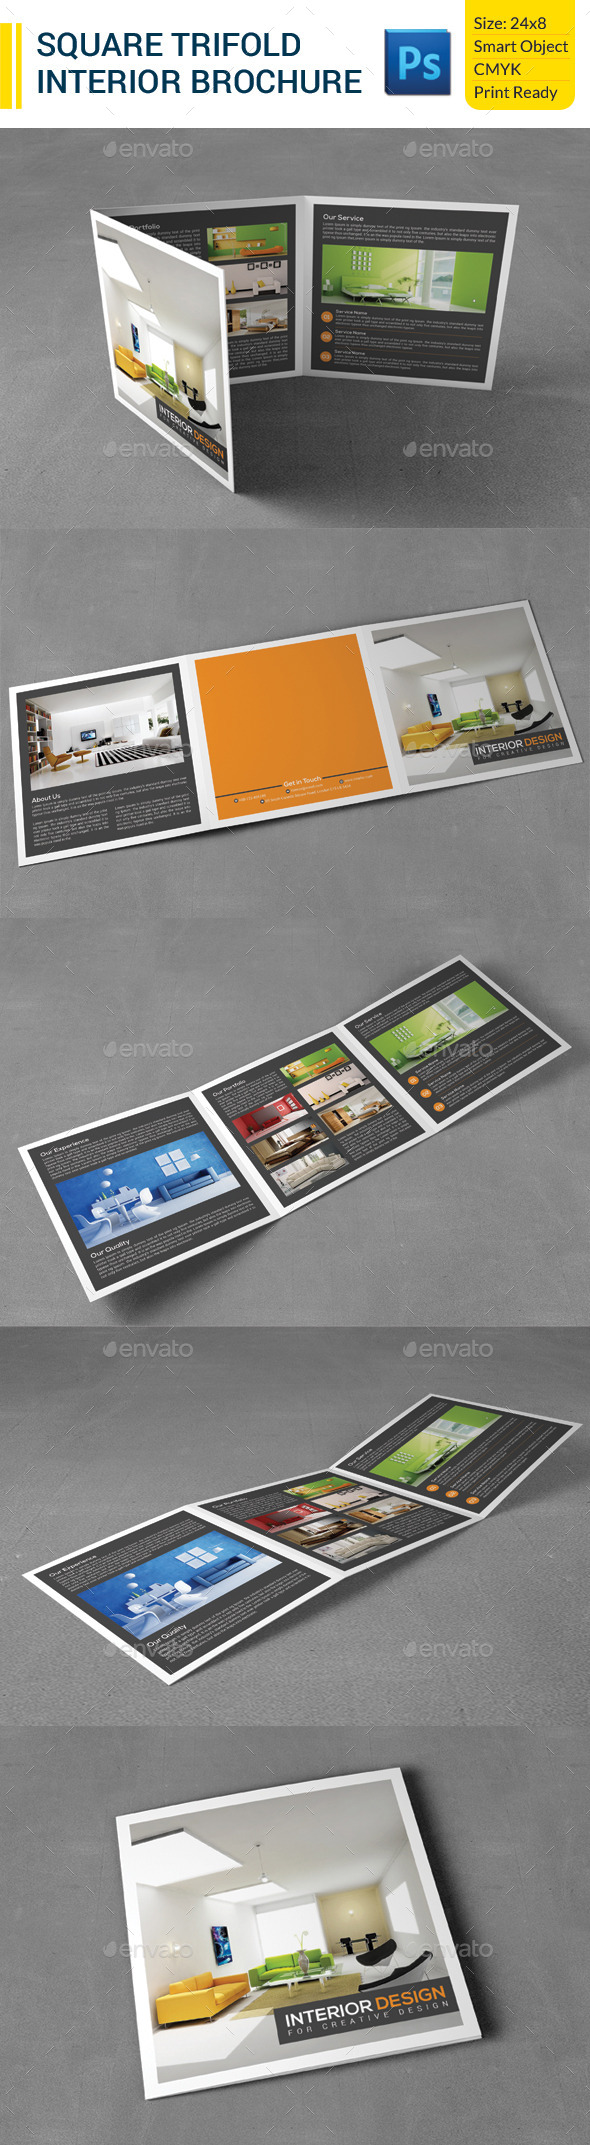 Square Trifold Interior Brochure - Corporate Brochures